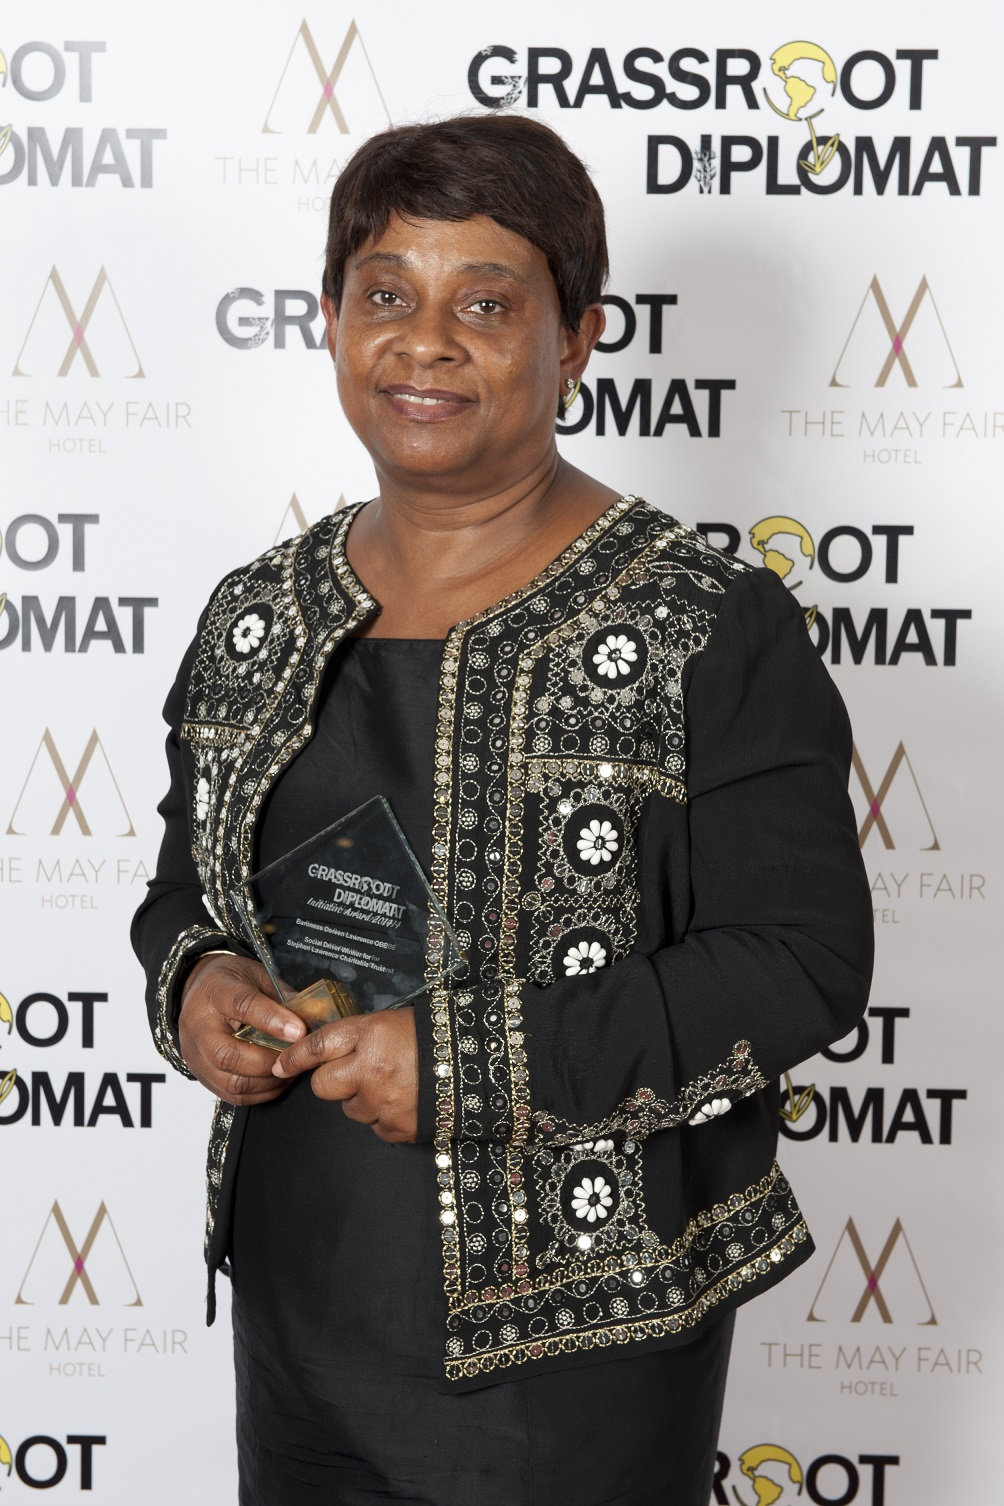 BARONESS LAWRENCE - HOUSE OF LORDS PEERSOCIAL DRIVER WINNER: STEPHEN LAWRENCE CHARITABLE TRUST2014A charity born out of a personal tragedy, Baroness Lawrence founded the Stephen Lawrence Charitable Trust following the murder of her son Stephen in 1993. The charity promotes a positive community legacy in her son's name and creates an environment of social inclusion and empowerment for youths in Britain. Her charity offers free training workshops to local communities in Lewisham, Greenwich and Southwark in providing young people with tangible skills and access to professions including music, media and law.